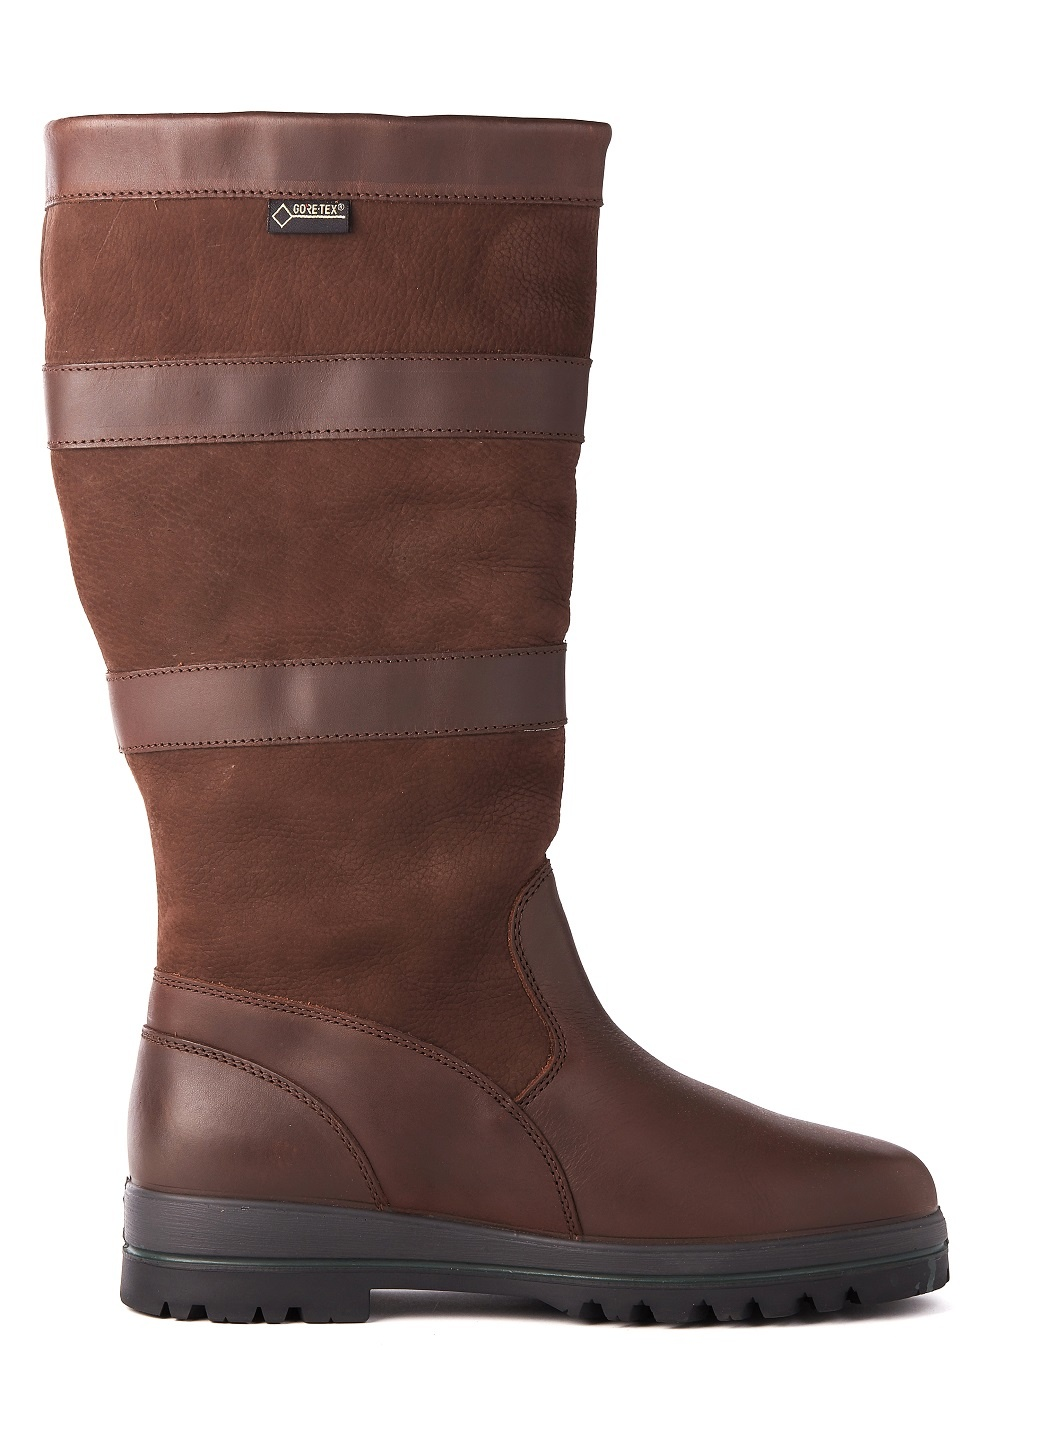 Dubarry Wexford - Java-5